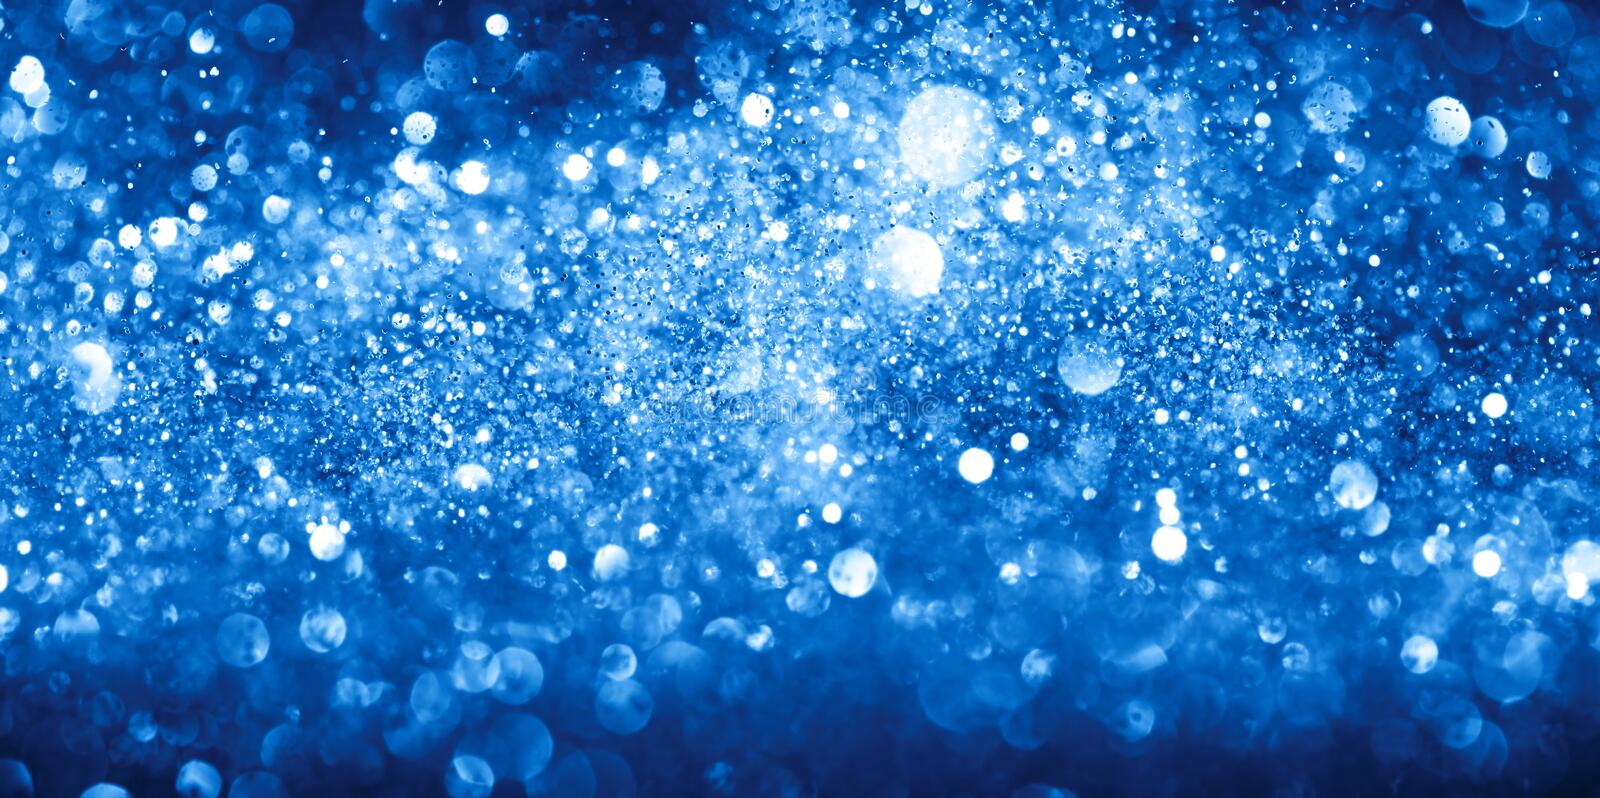 Download Sparkling Glittering Lights Abstract Stock Photo - Image of blue, blur: 100815674